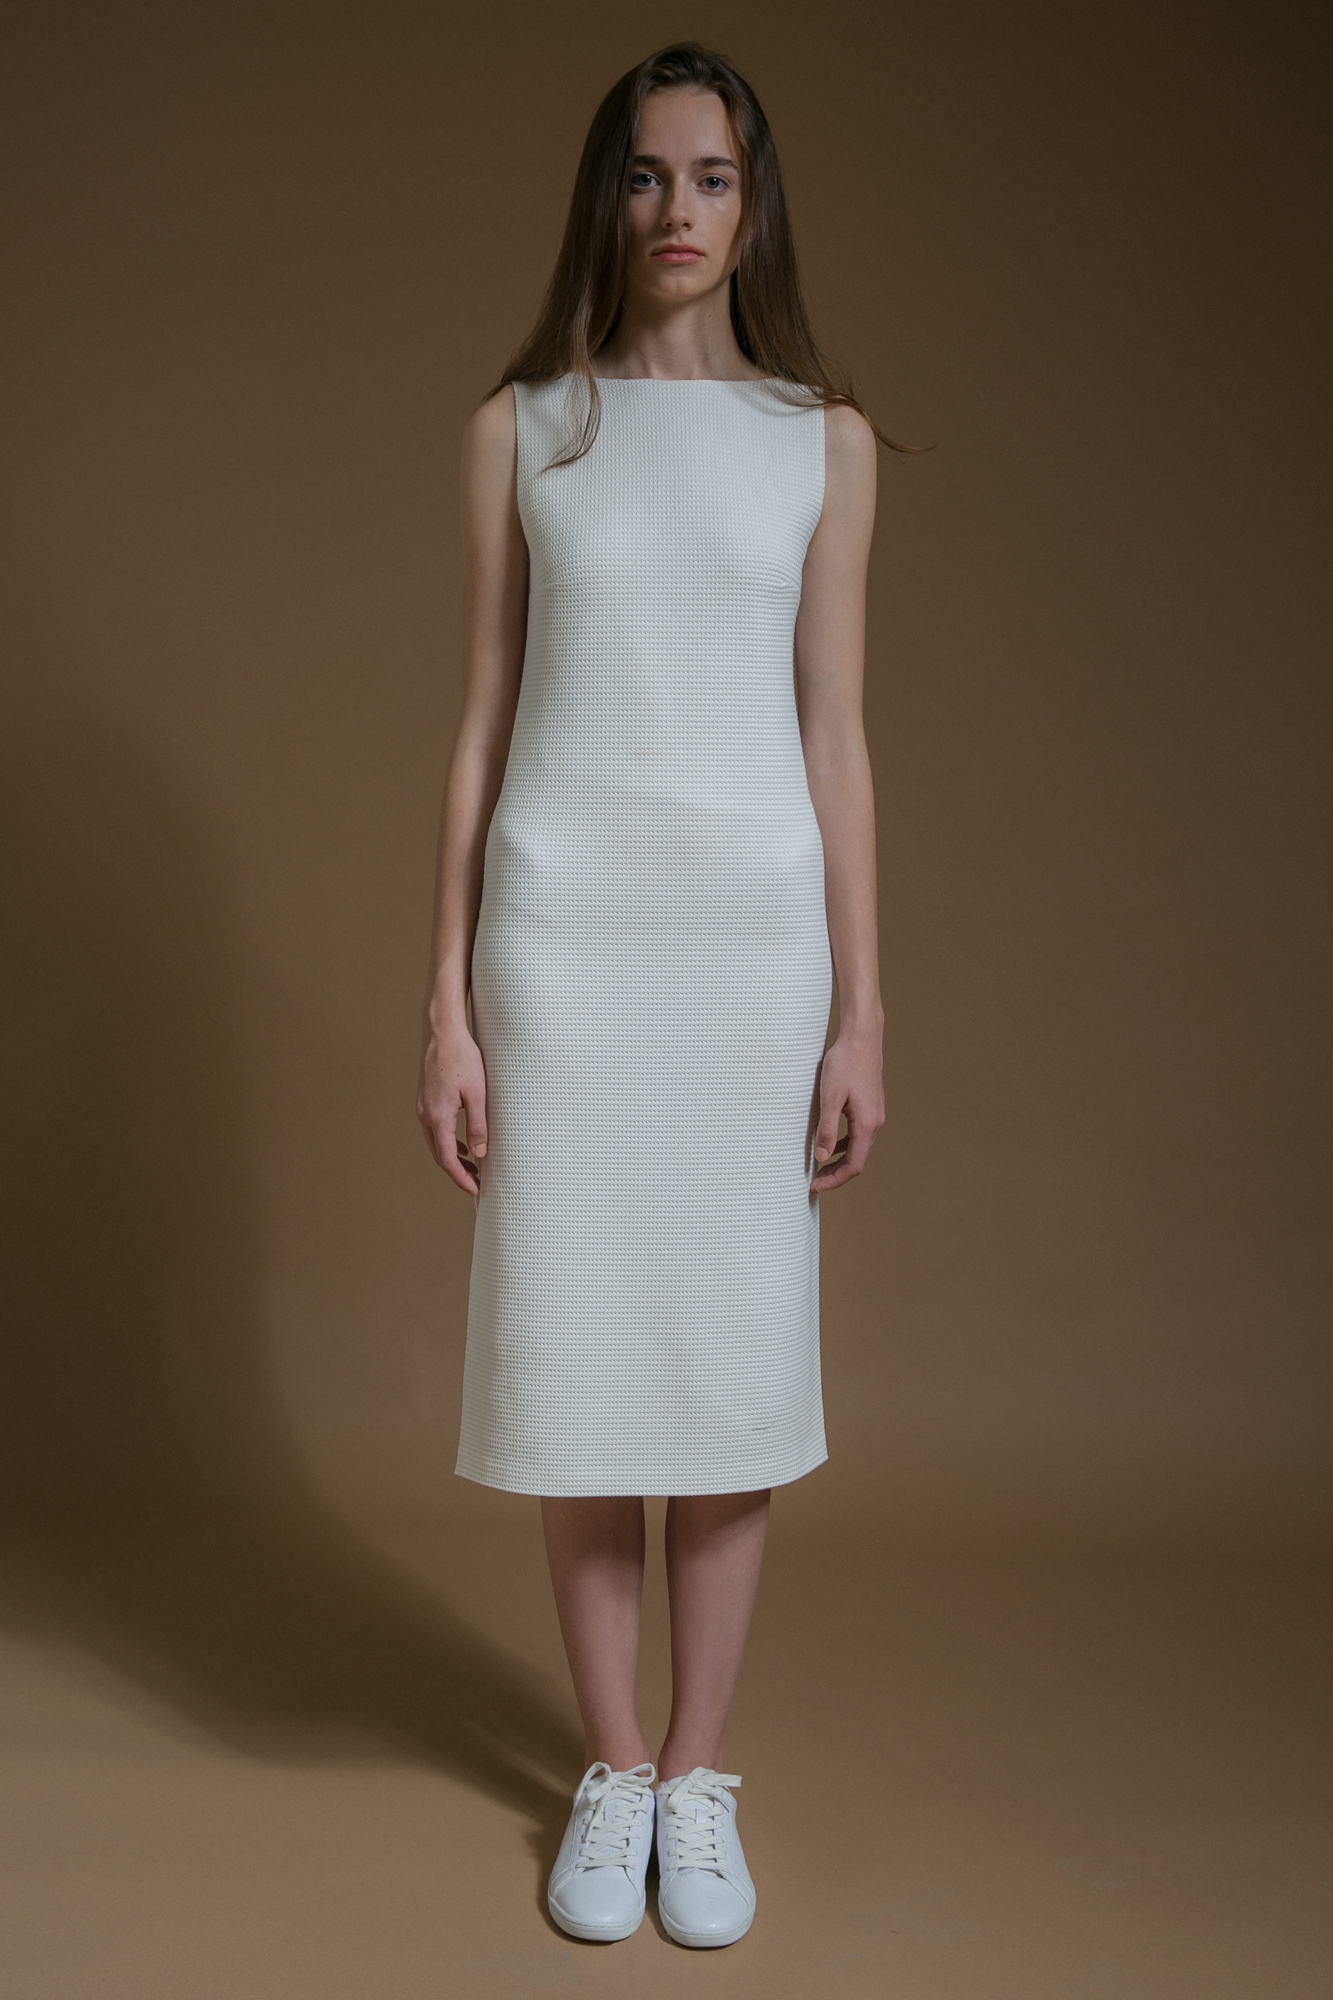 wearenotsisters_wrns_ss17_splice-dress_01